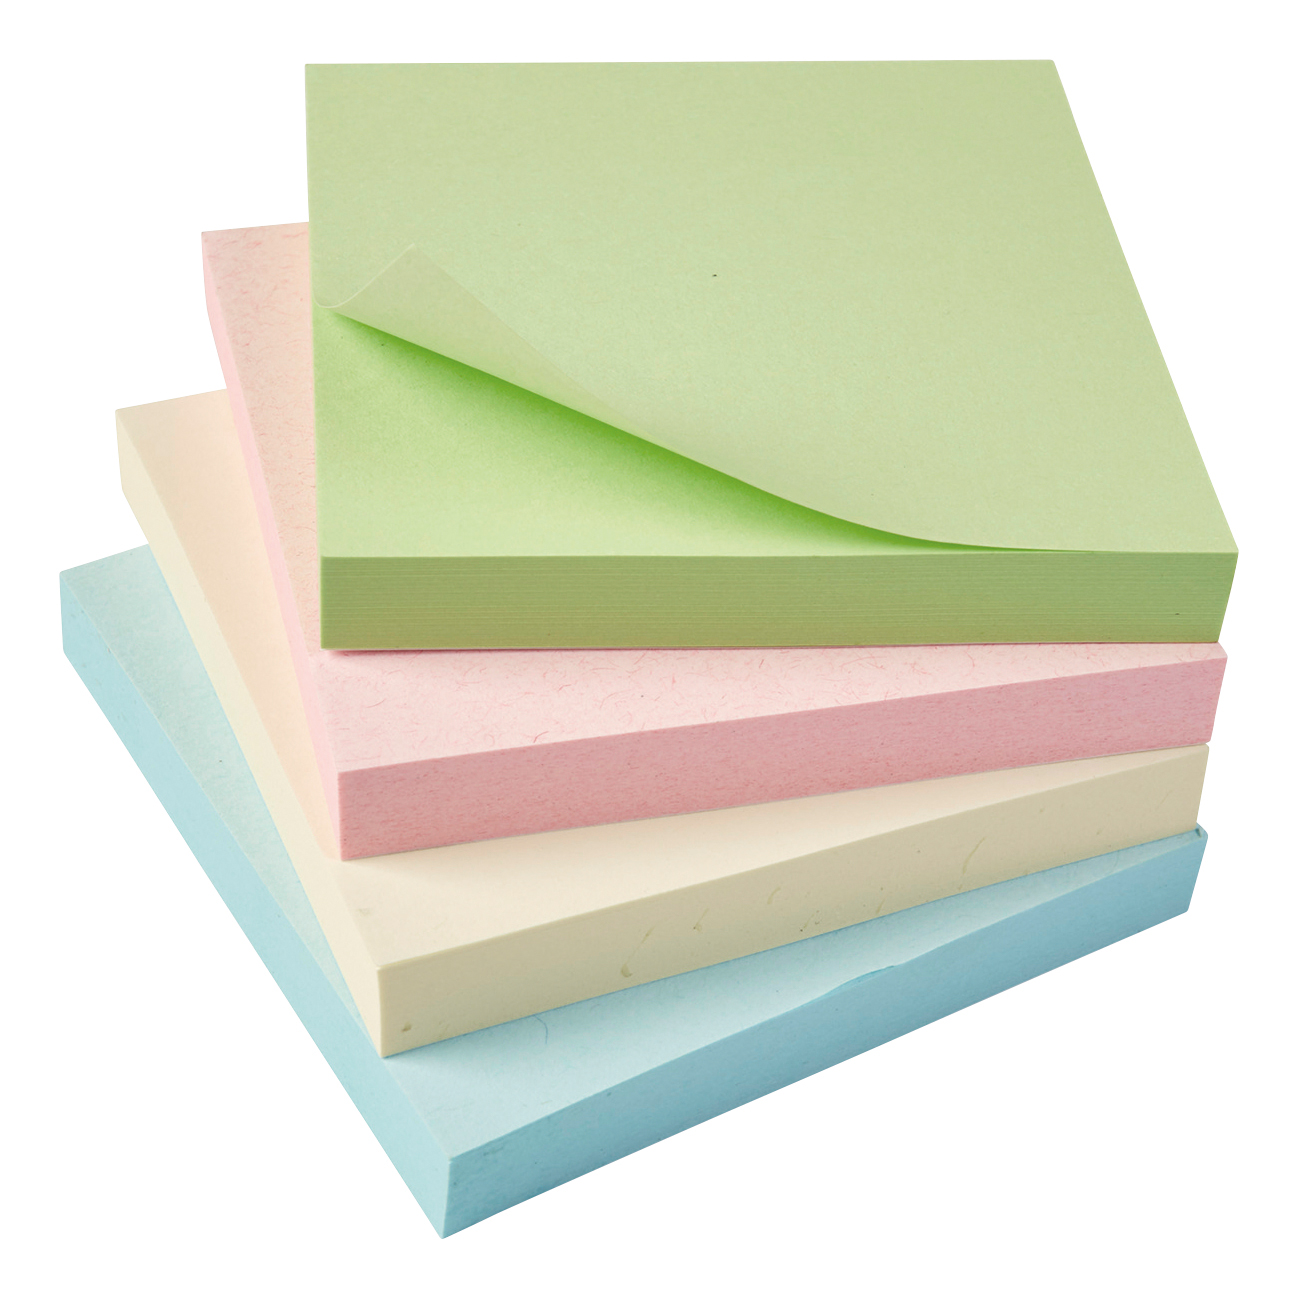 Self adhesive note paper 5 Star Eco Repositionable Notes 76x76mm Re-Move Pastel Pack 12